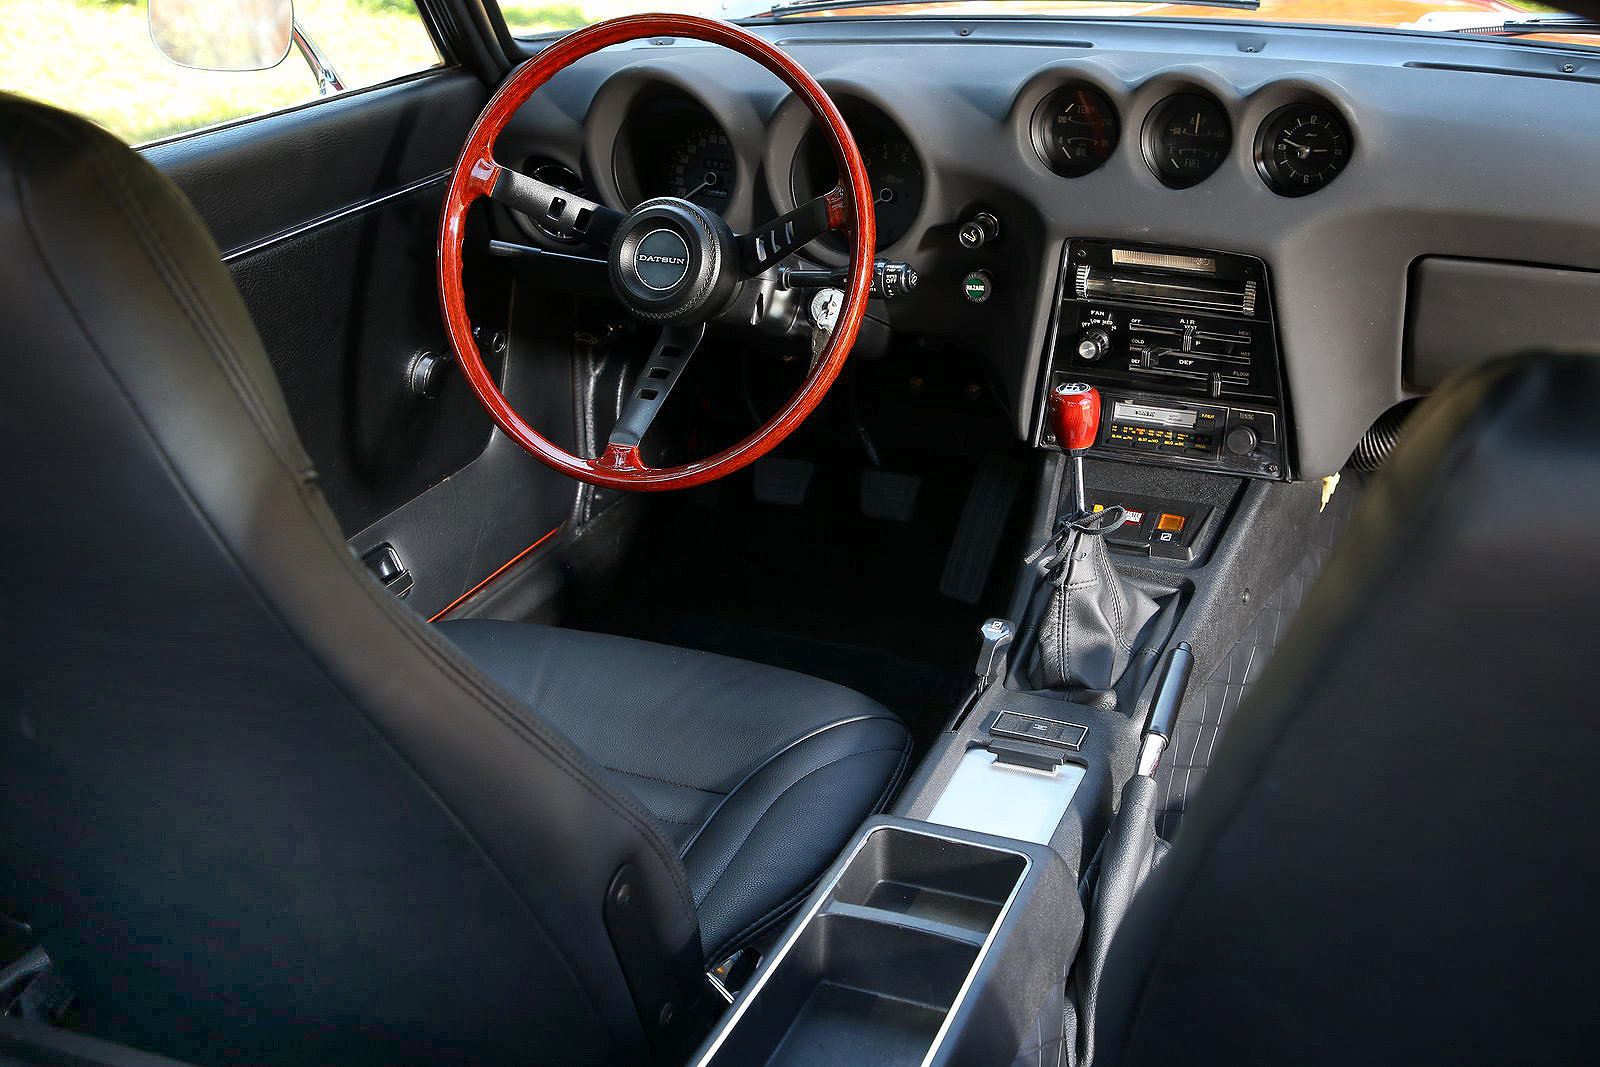 1972 Concours d'elegance  240Z For Sale (picture 5 of 6)